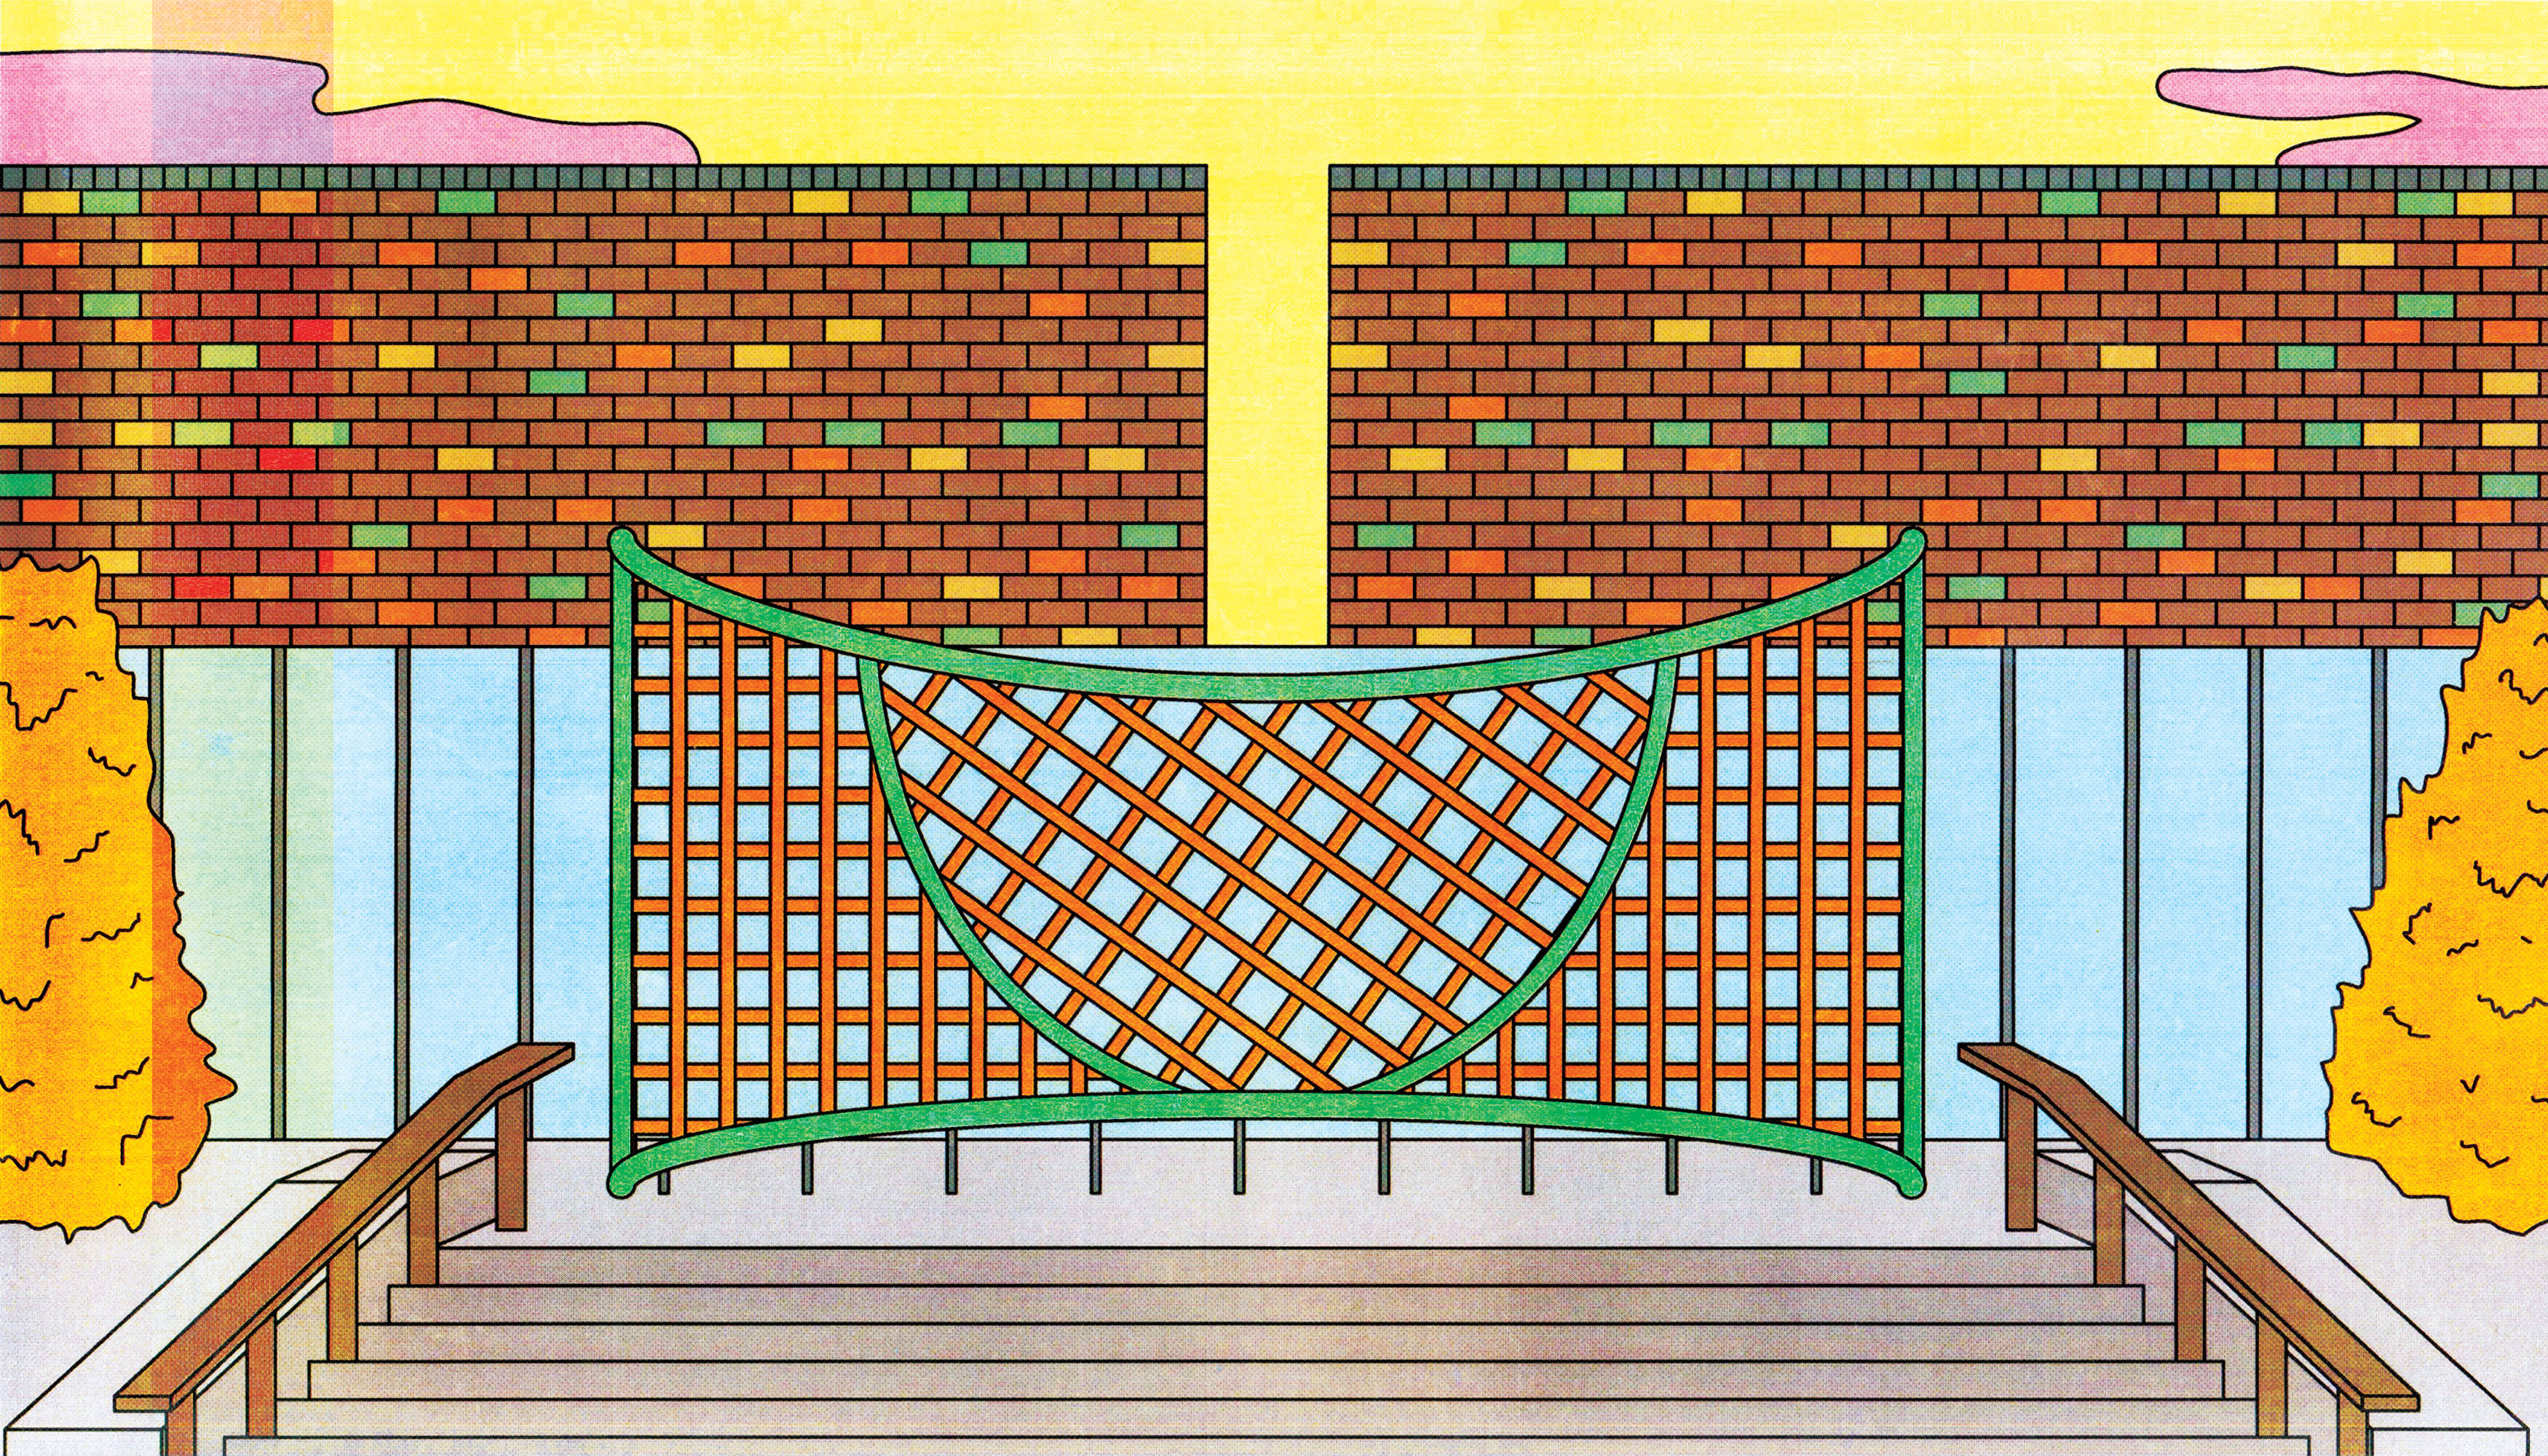 An orange, net-like, public seating structure placed outside, in front of a brick wall. Illustration.